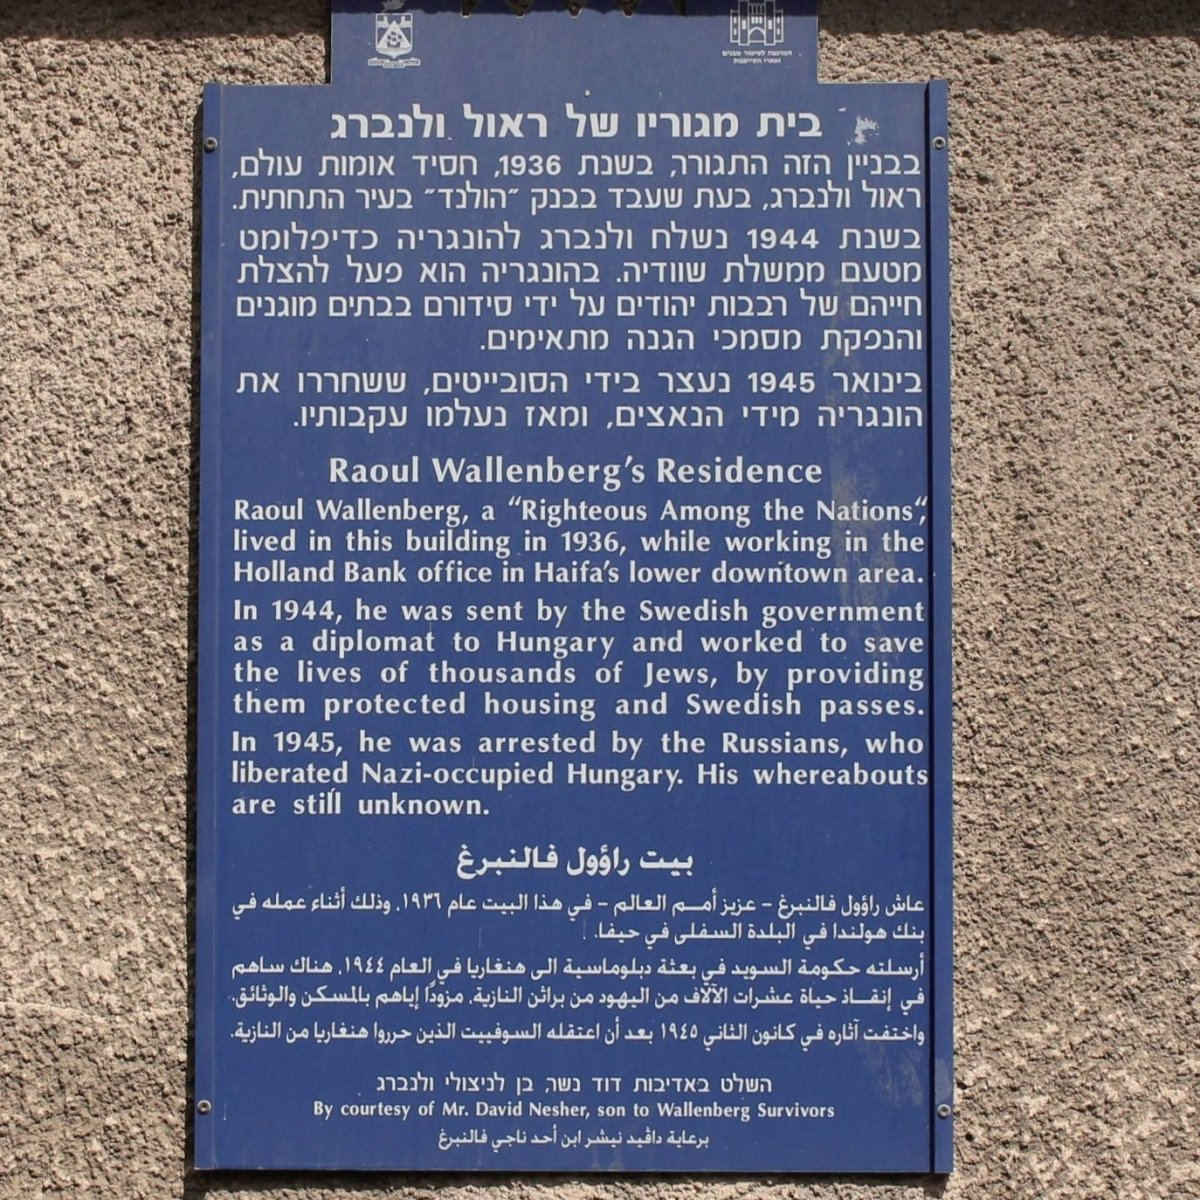 Memorial board on the Raoul Wallenberg's house in Haifa, Israel